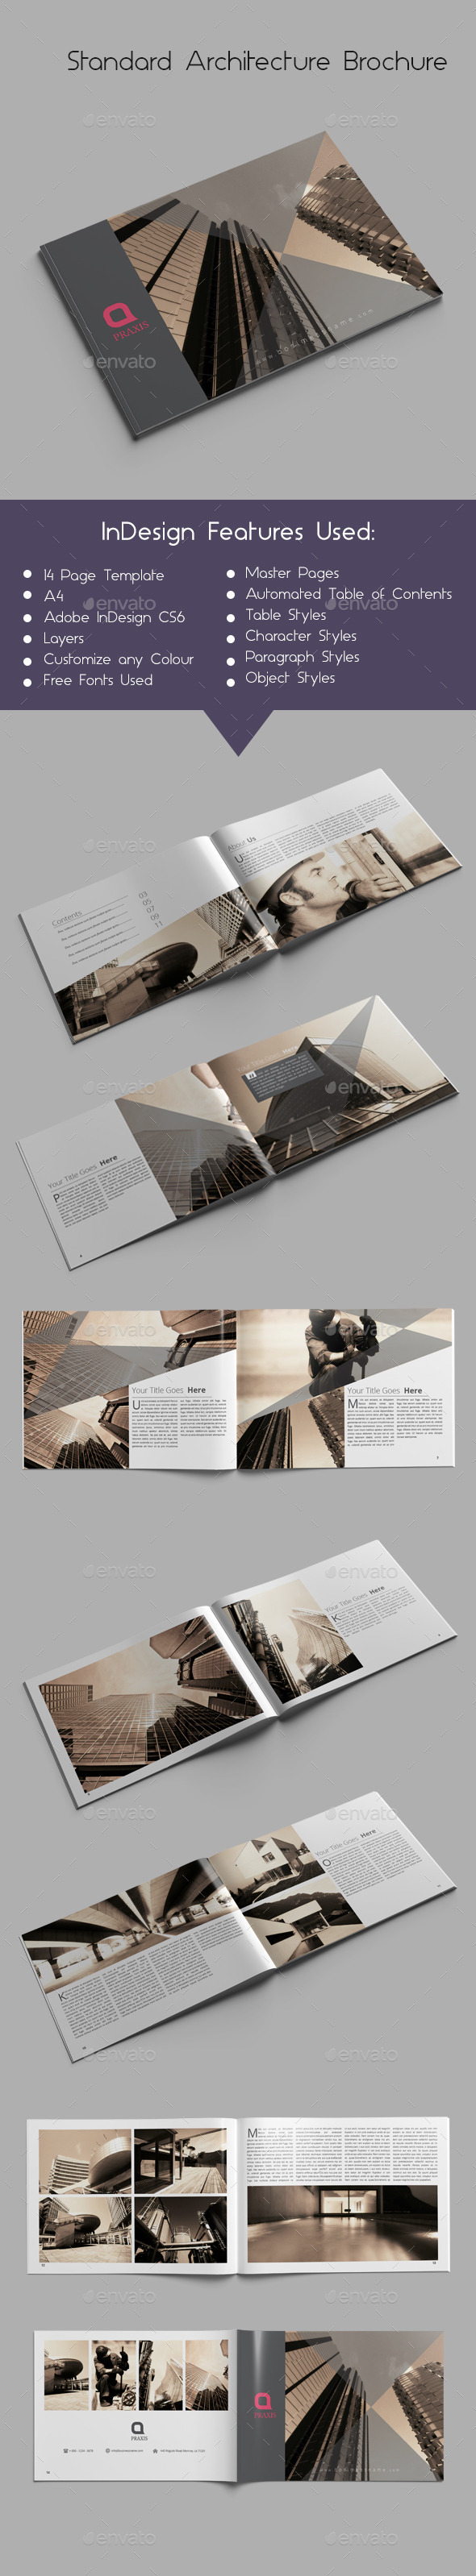 GraphicRiver Standard Architecture Brochure 9852707